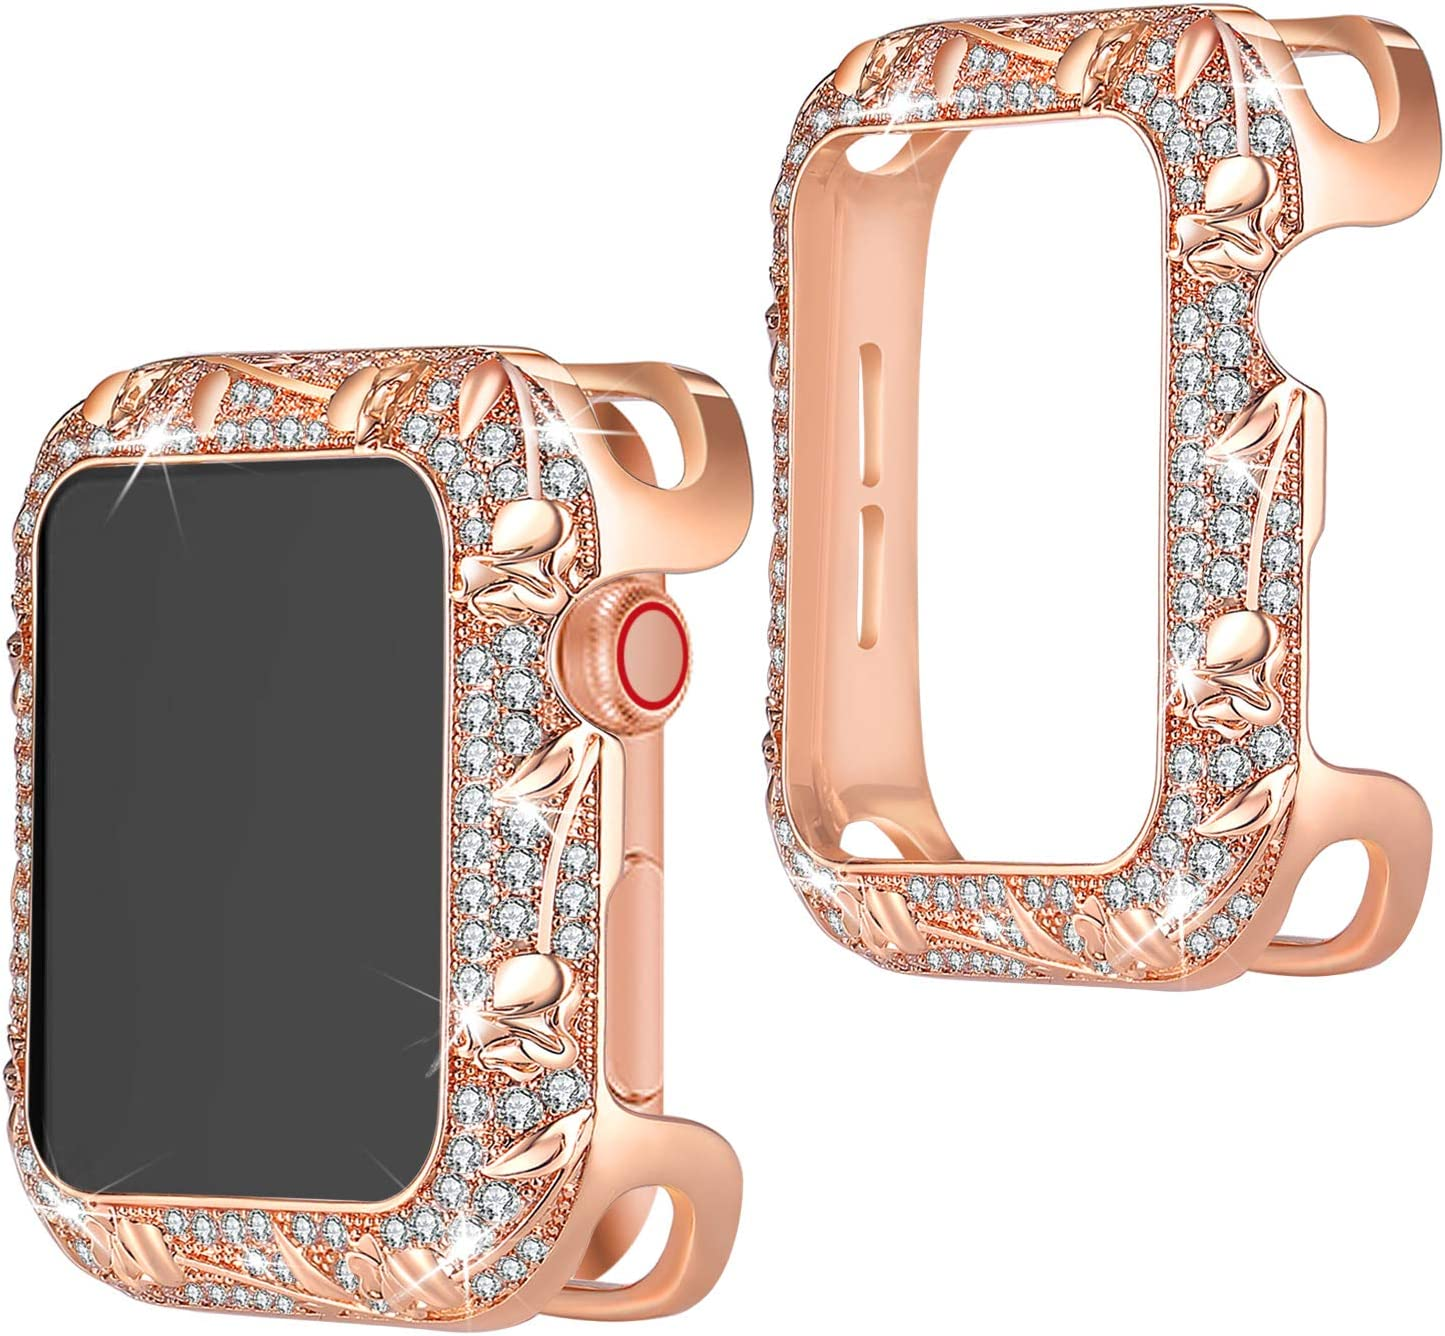 TOMAZON Bling Case Compatible for Apple Watch 40mm SE Series 6 5 4, Stainless Metal Floral Carved Shiny Jewelry Crystal Diamond Protective Cover Bumper Case for Women Girl, Rose Gold